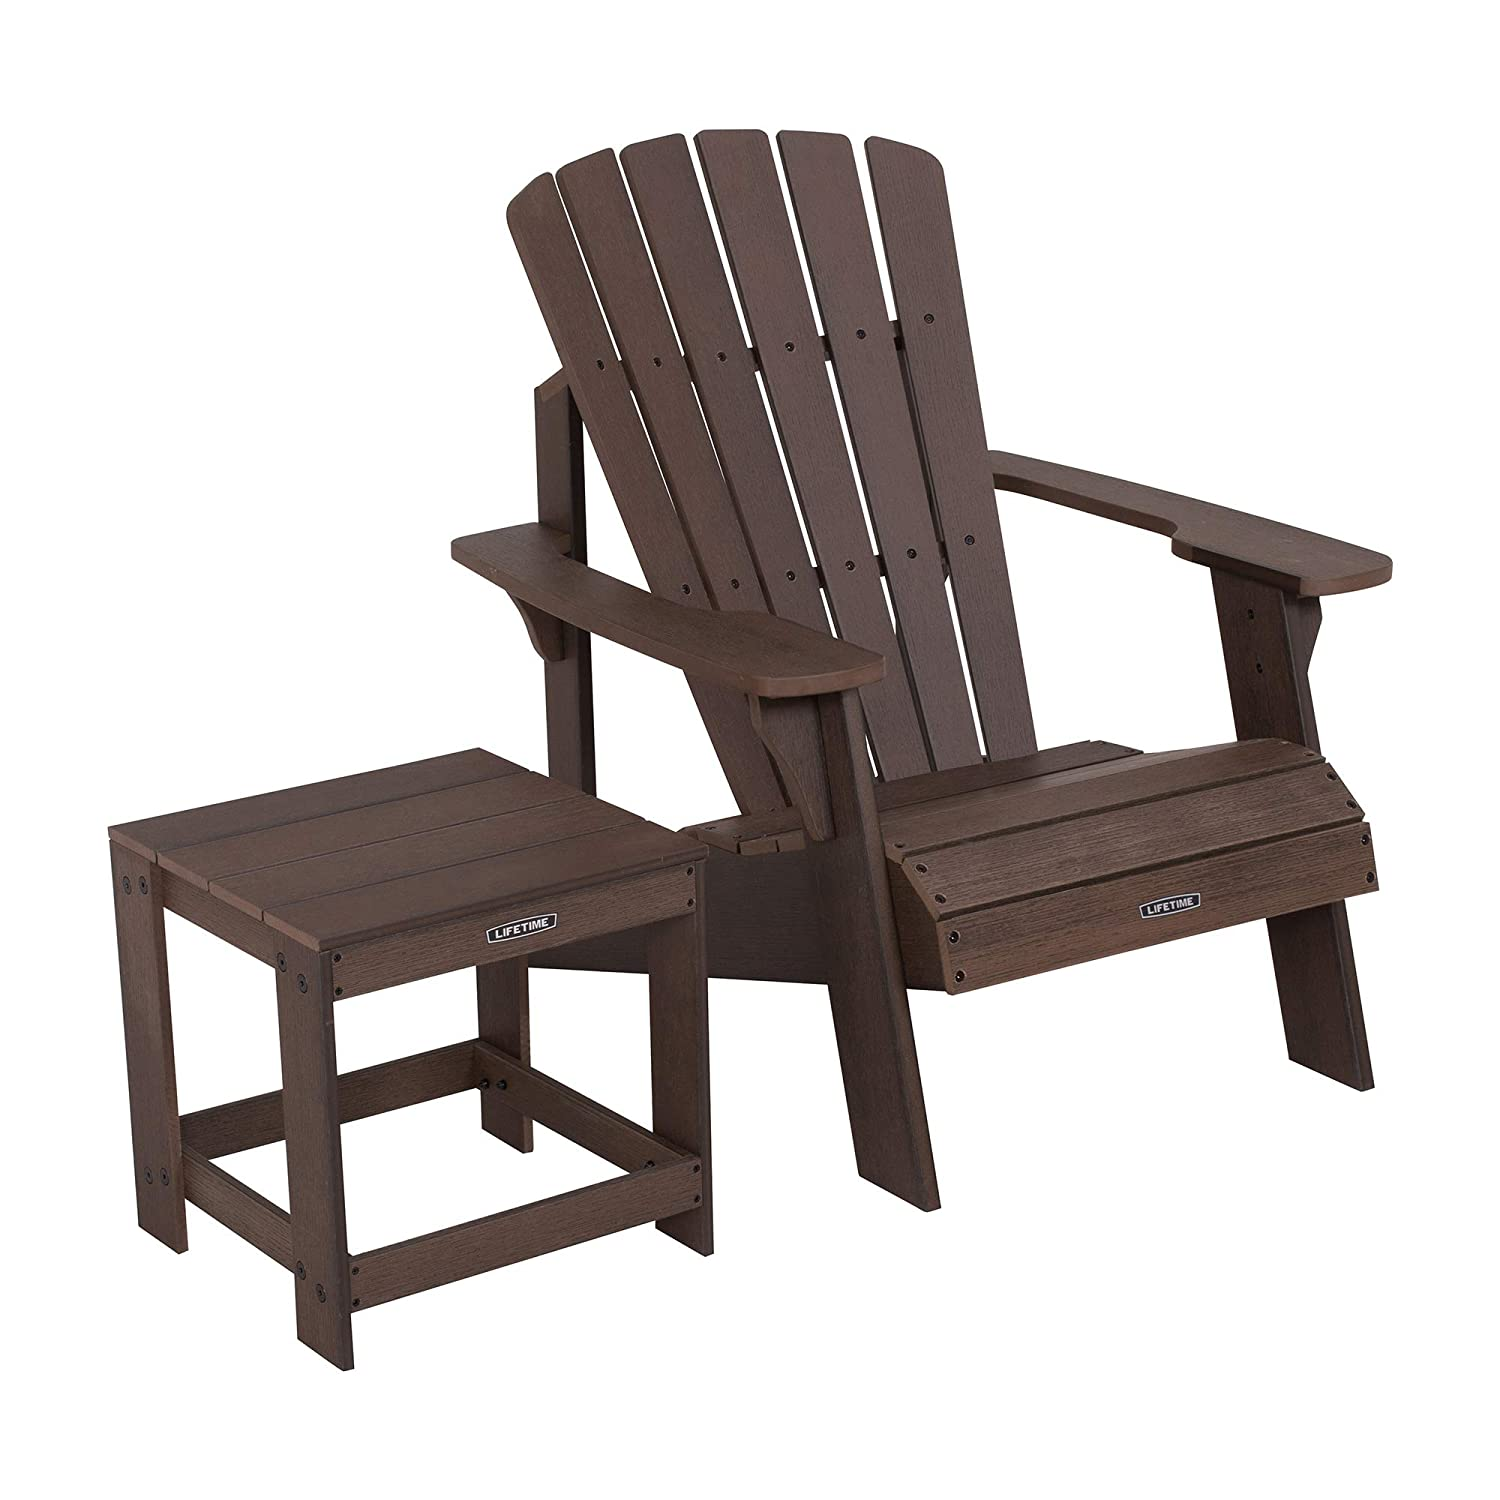 Lifetime 60293 Adirondack Chair and Table Combo, Rustic Brown